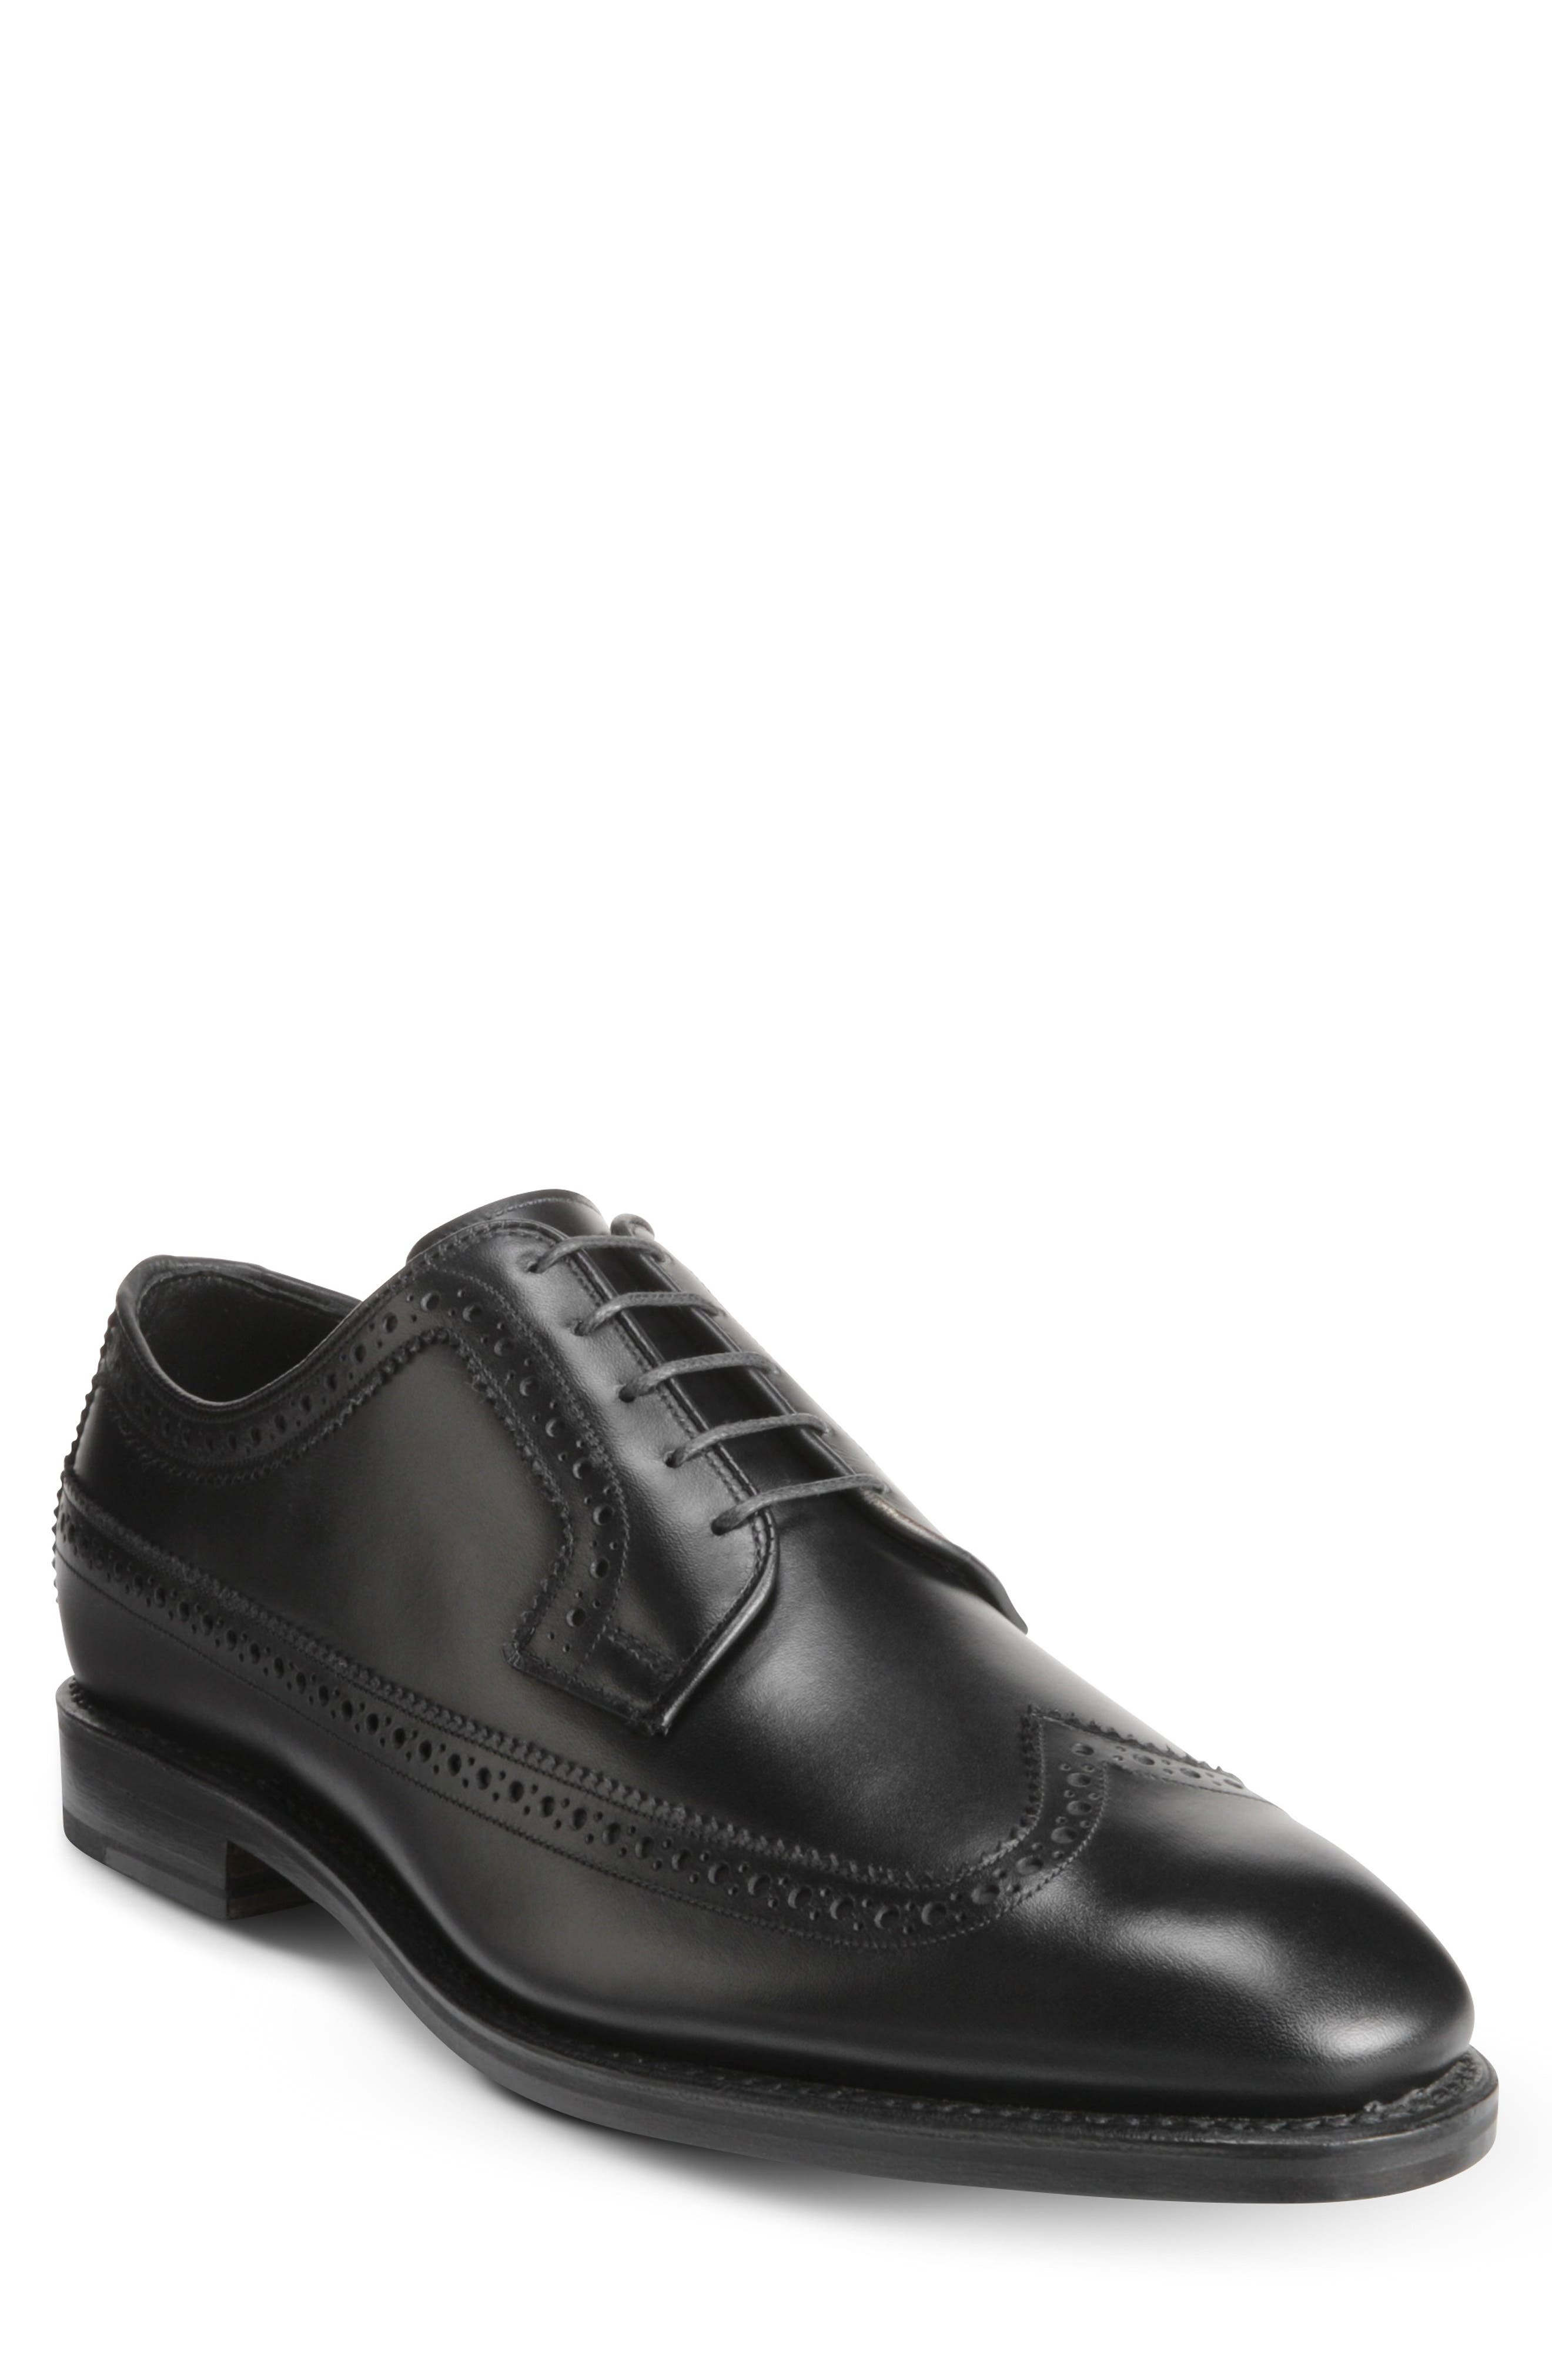 Image of Allen Edmonds Greene St. Wing Tip Lace Up